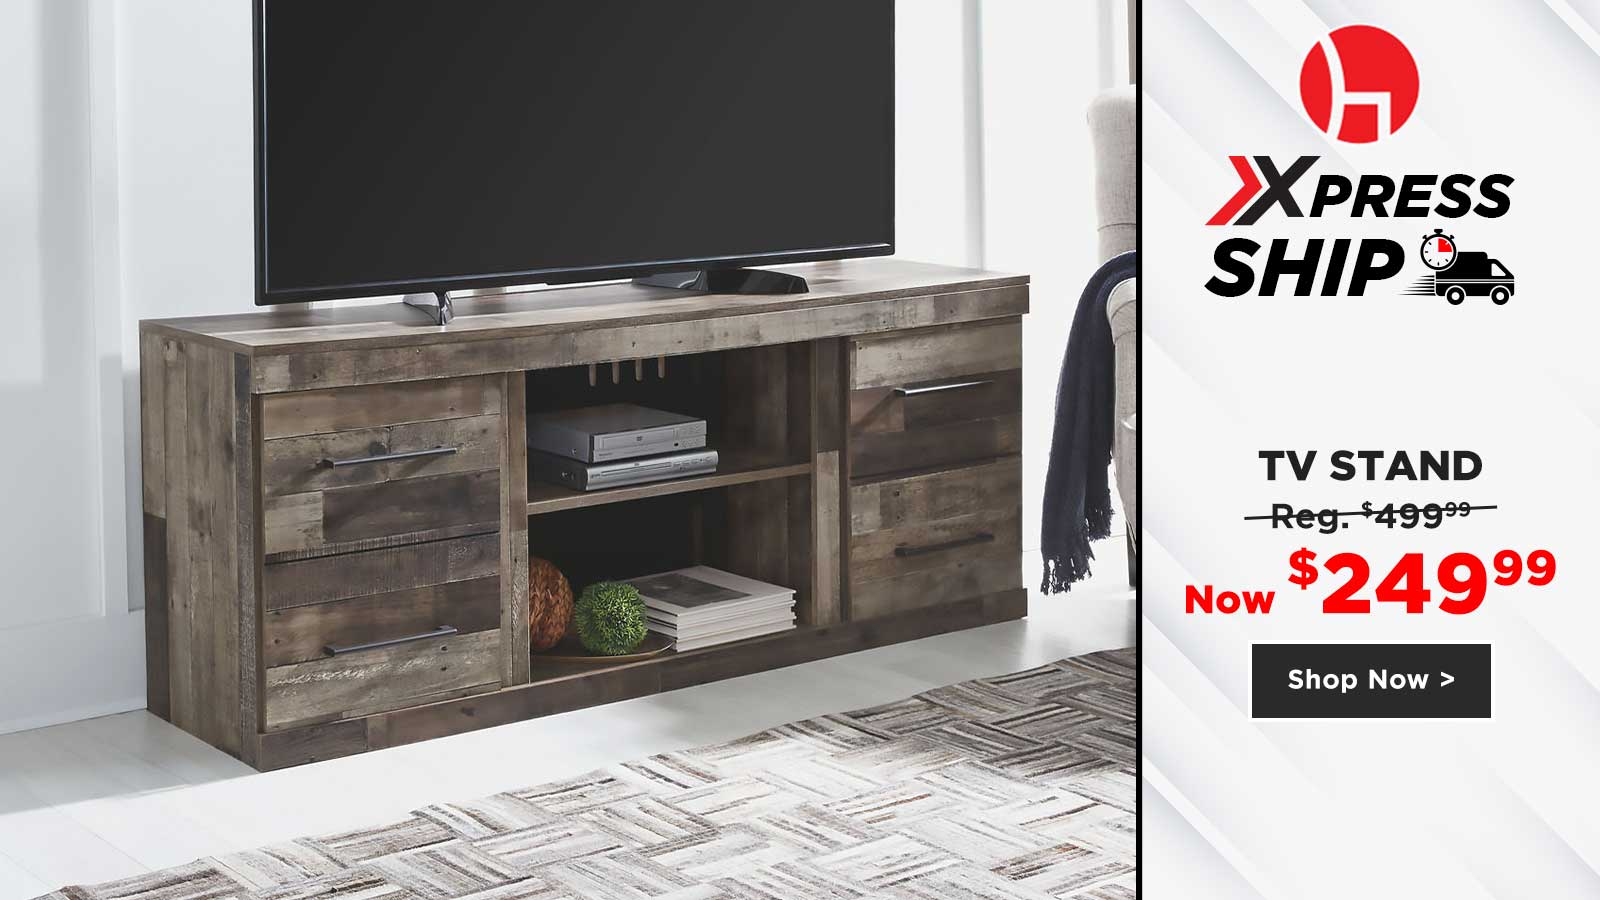 TV Stand $249.99